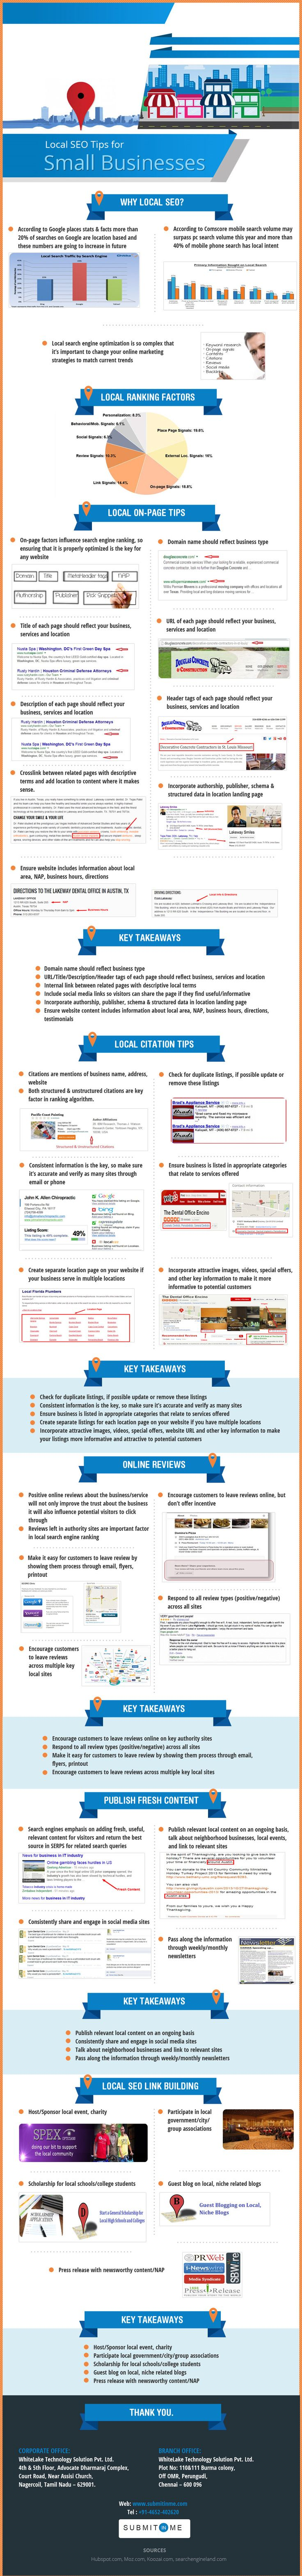 Local Seo Tips For Small Business #infographic